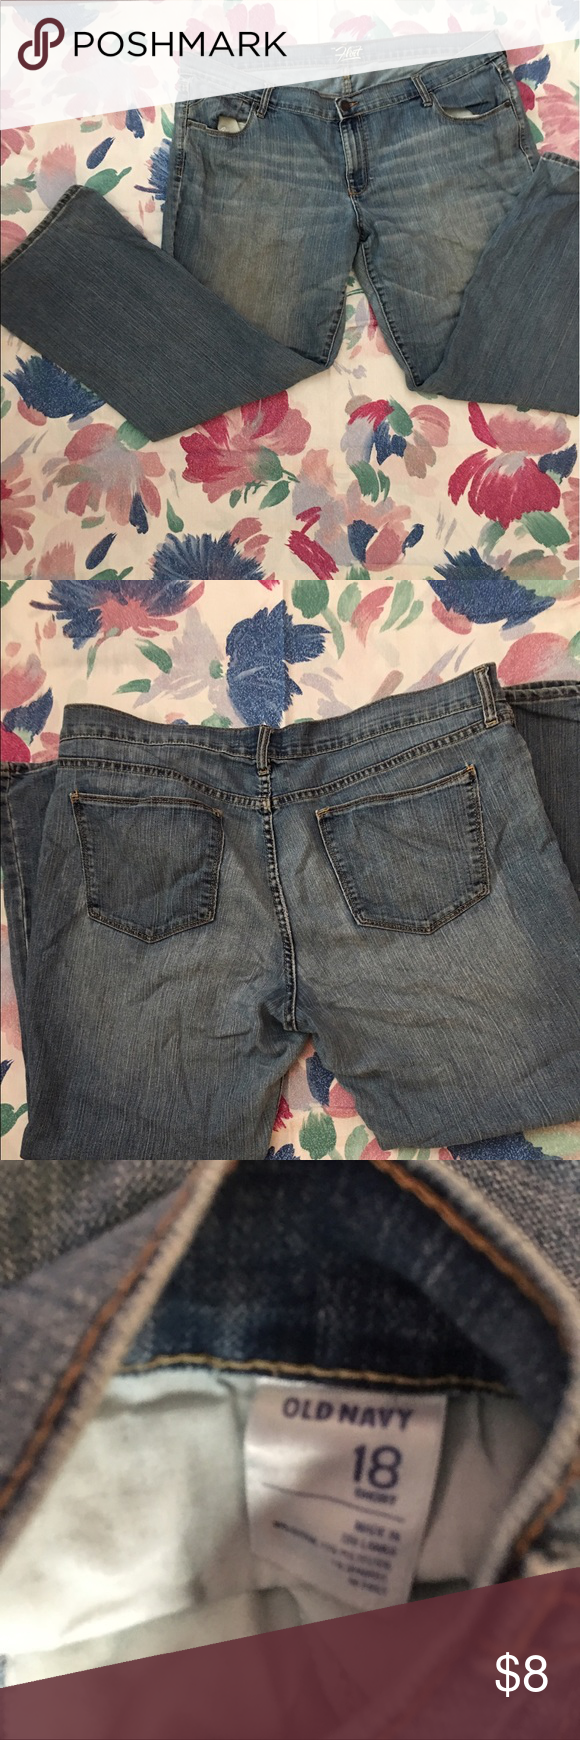 UEC Flirt Old Navy blue jeans size 18 short Old Navy stone washed blue jeans in excellent condition size 18 Short. Made of 80% cotton 13% polyester and 7% spandex. Soft and comfy! Wash and wear. Any questions or offers just ask. I'm clearing out my closet! Old Navy Jeans Flare & Wide Leg